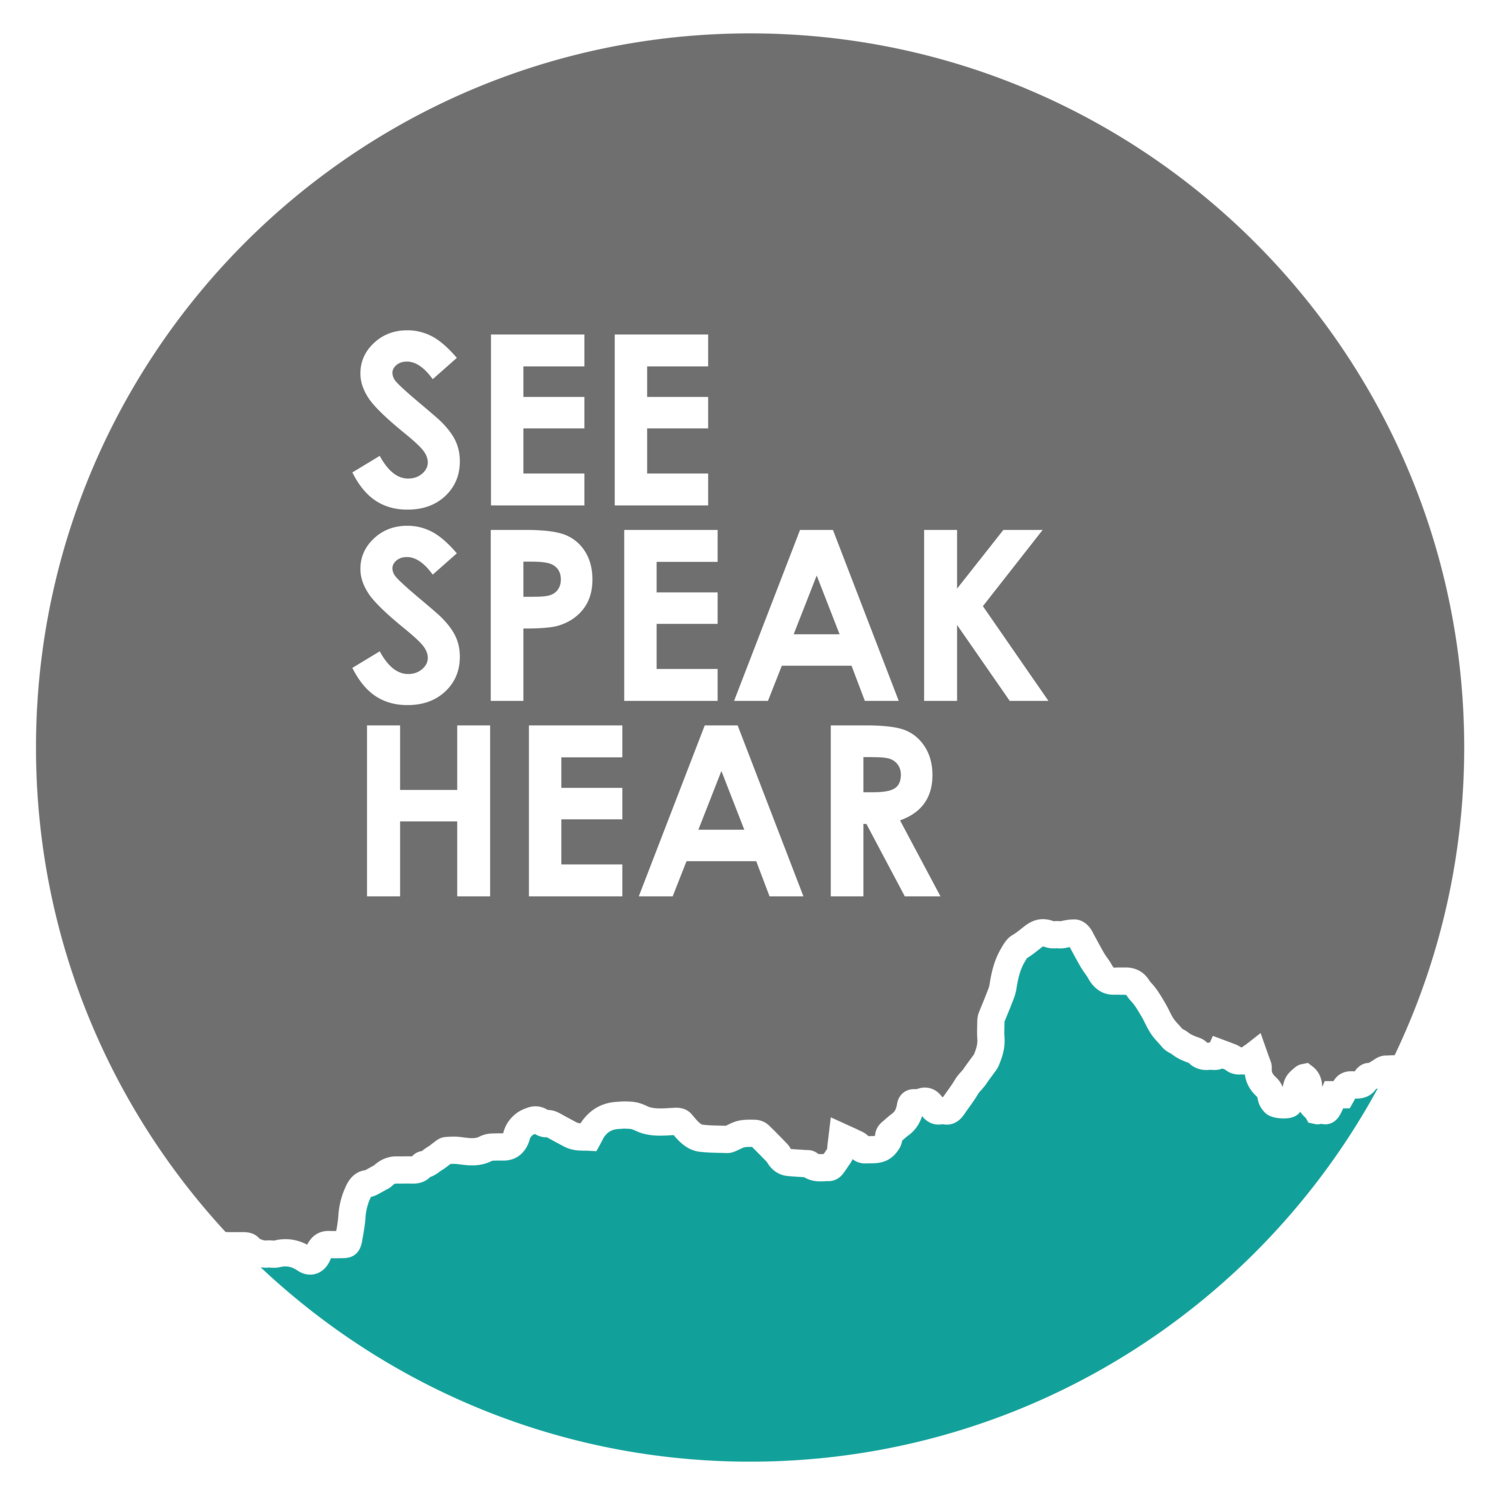 See Speak Hear | Film Production, Animation & Design